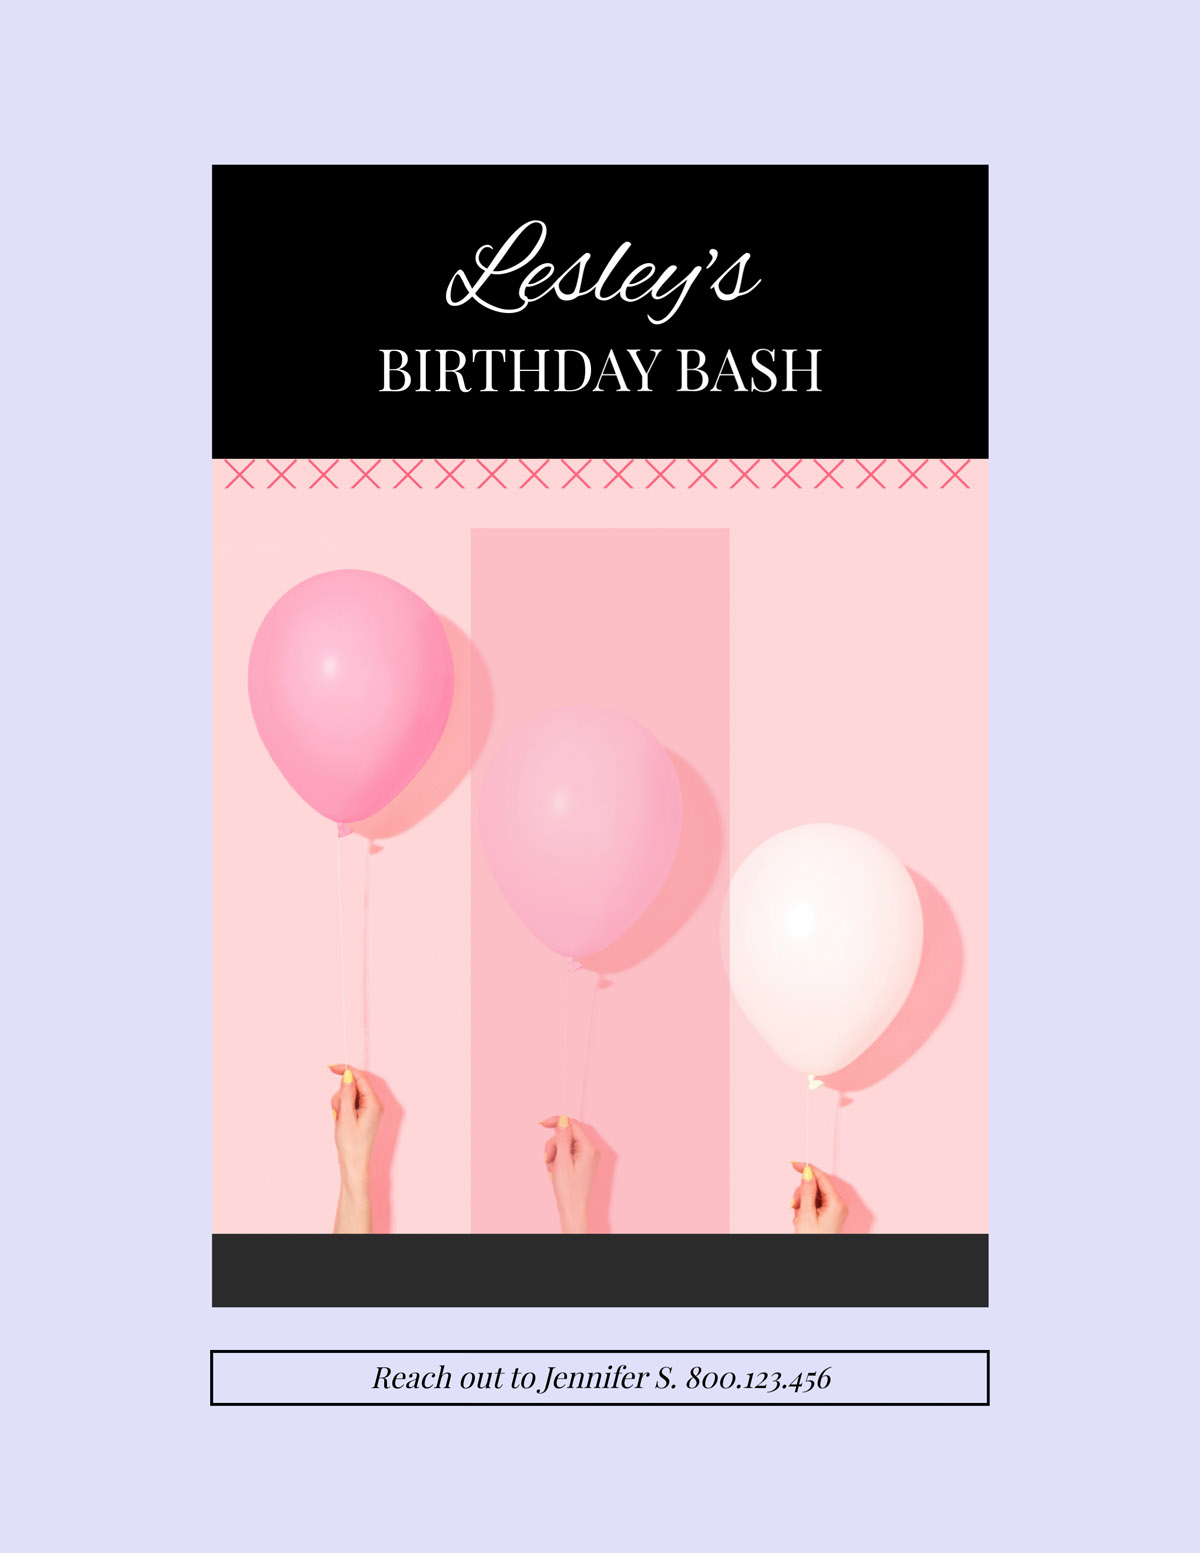 flyer templates - birthday bash event